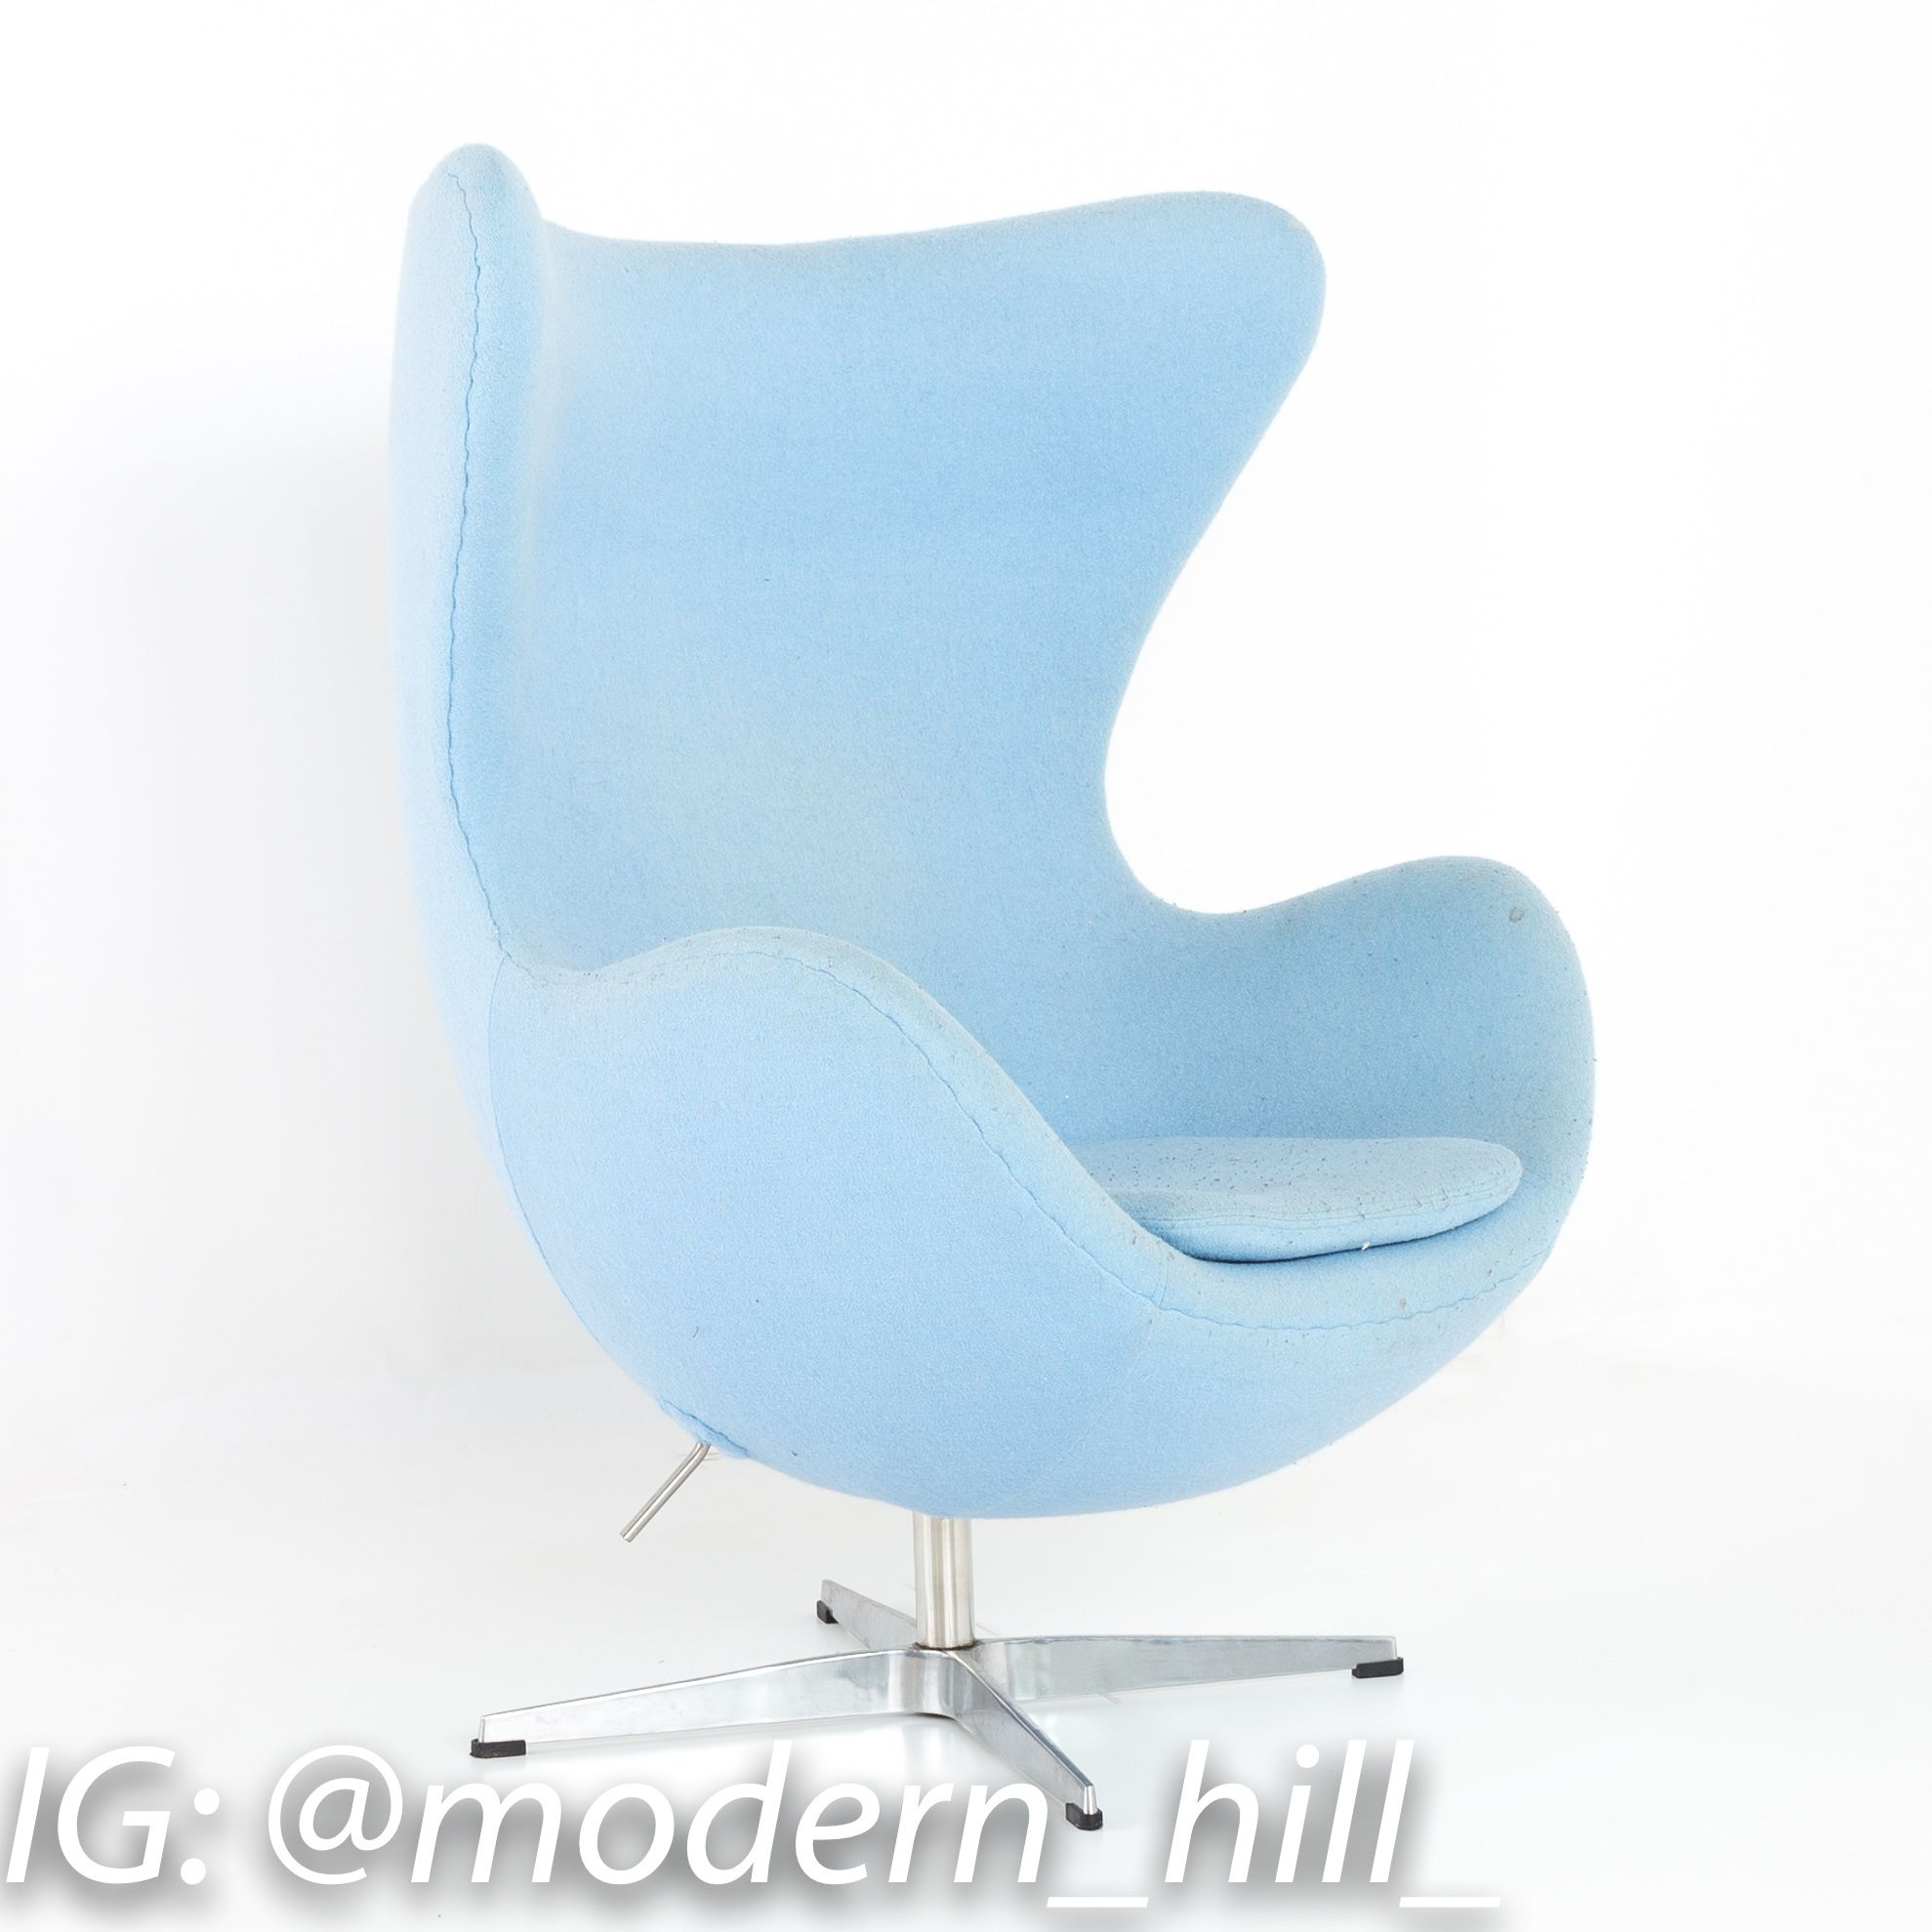 Pin On Mid Century Modern Chairs Sofas